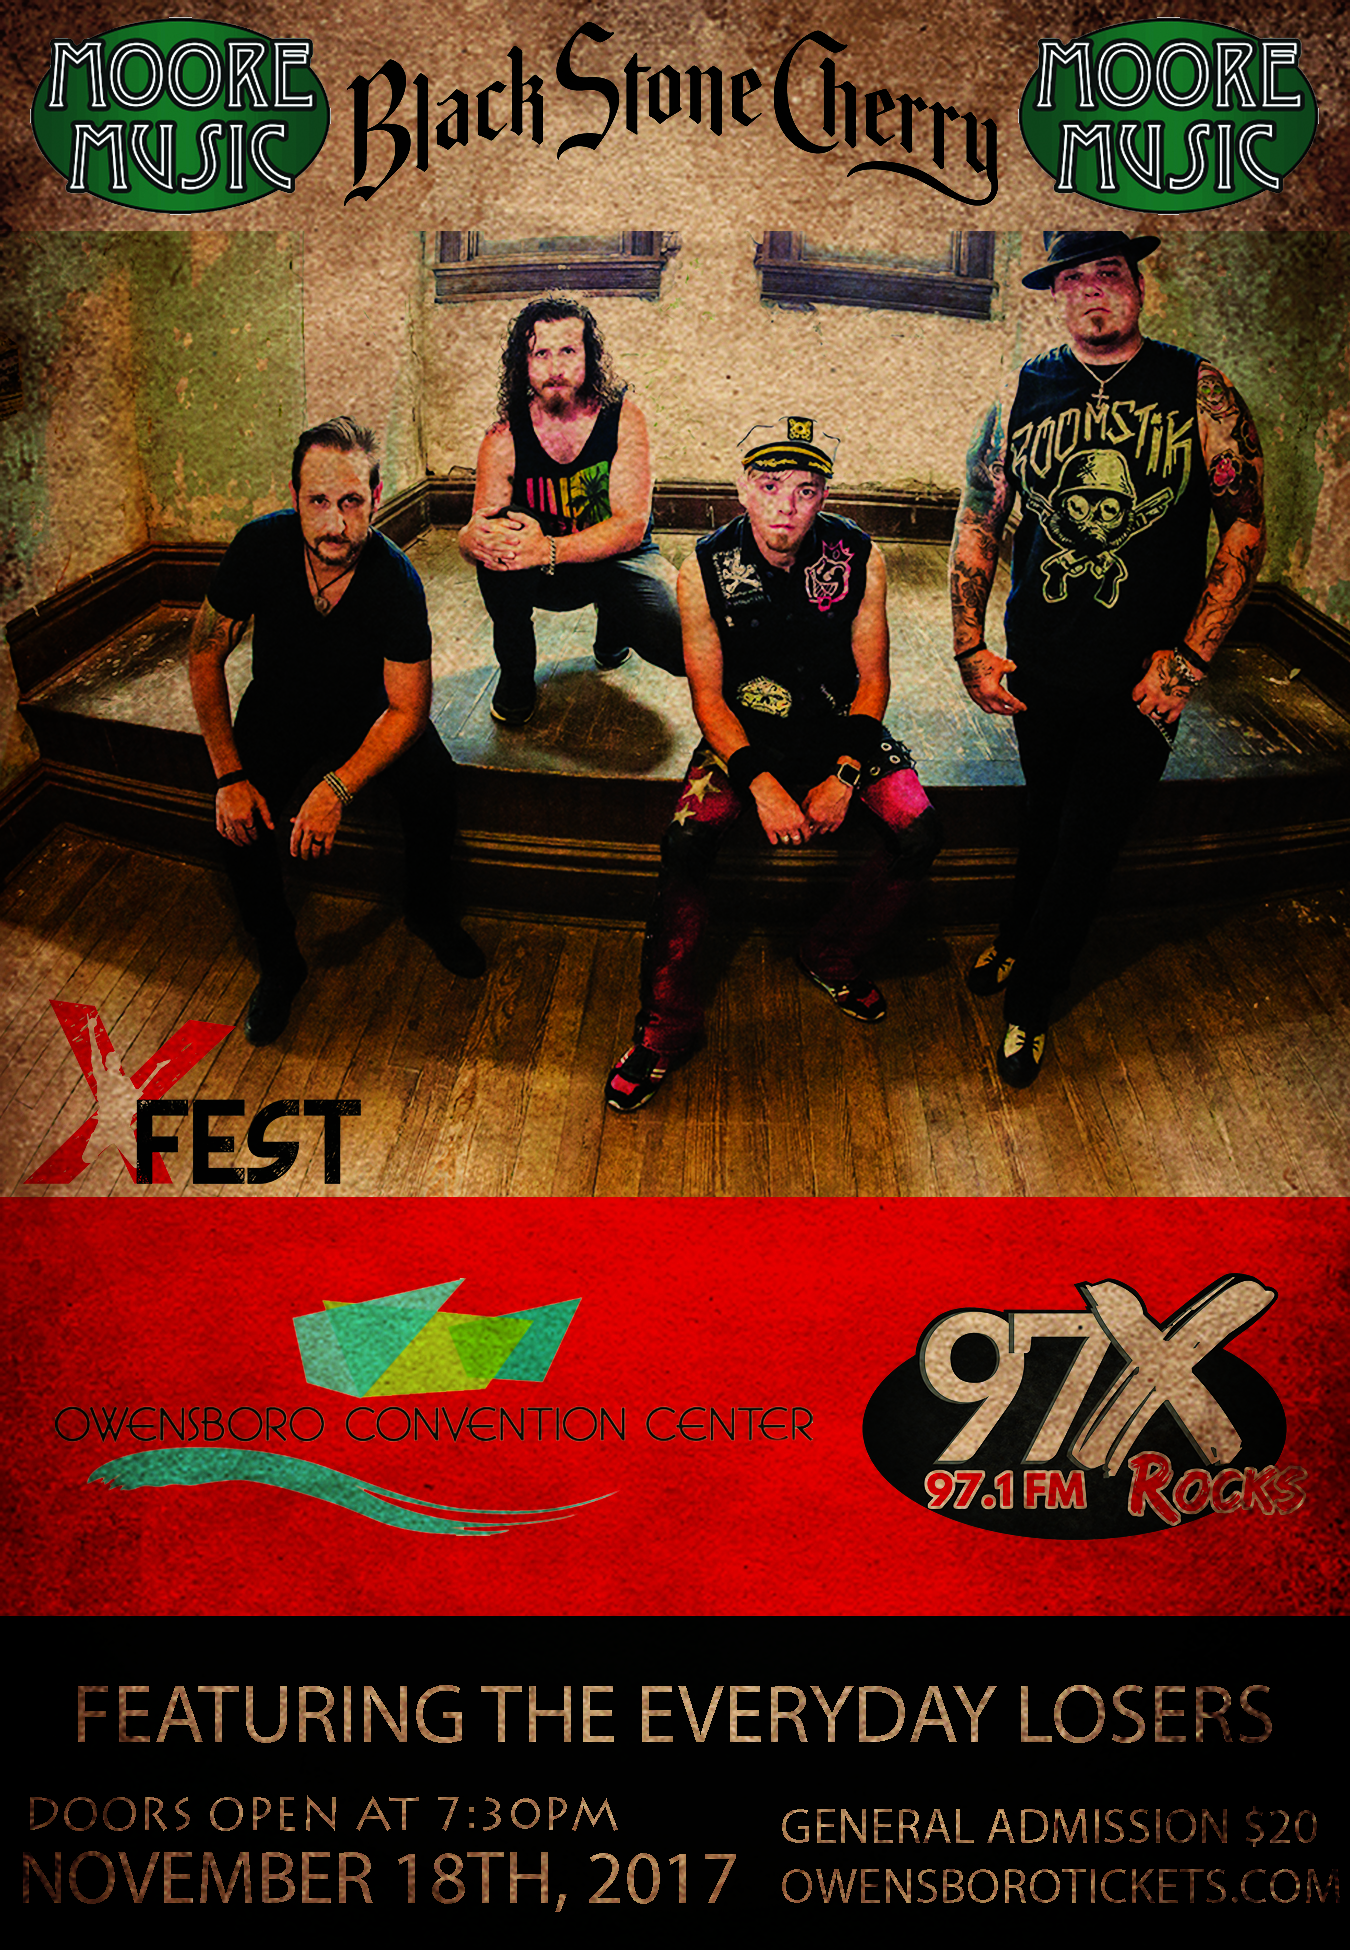 Black Stone Cherry Is Ready To Rock XFEST November 18th